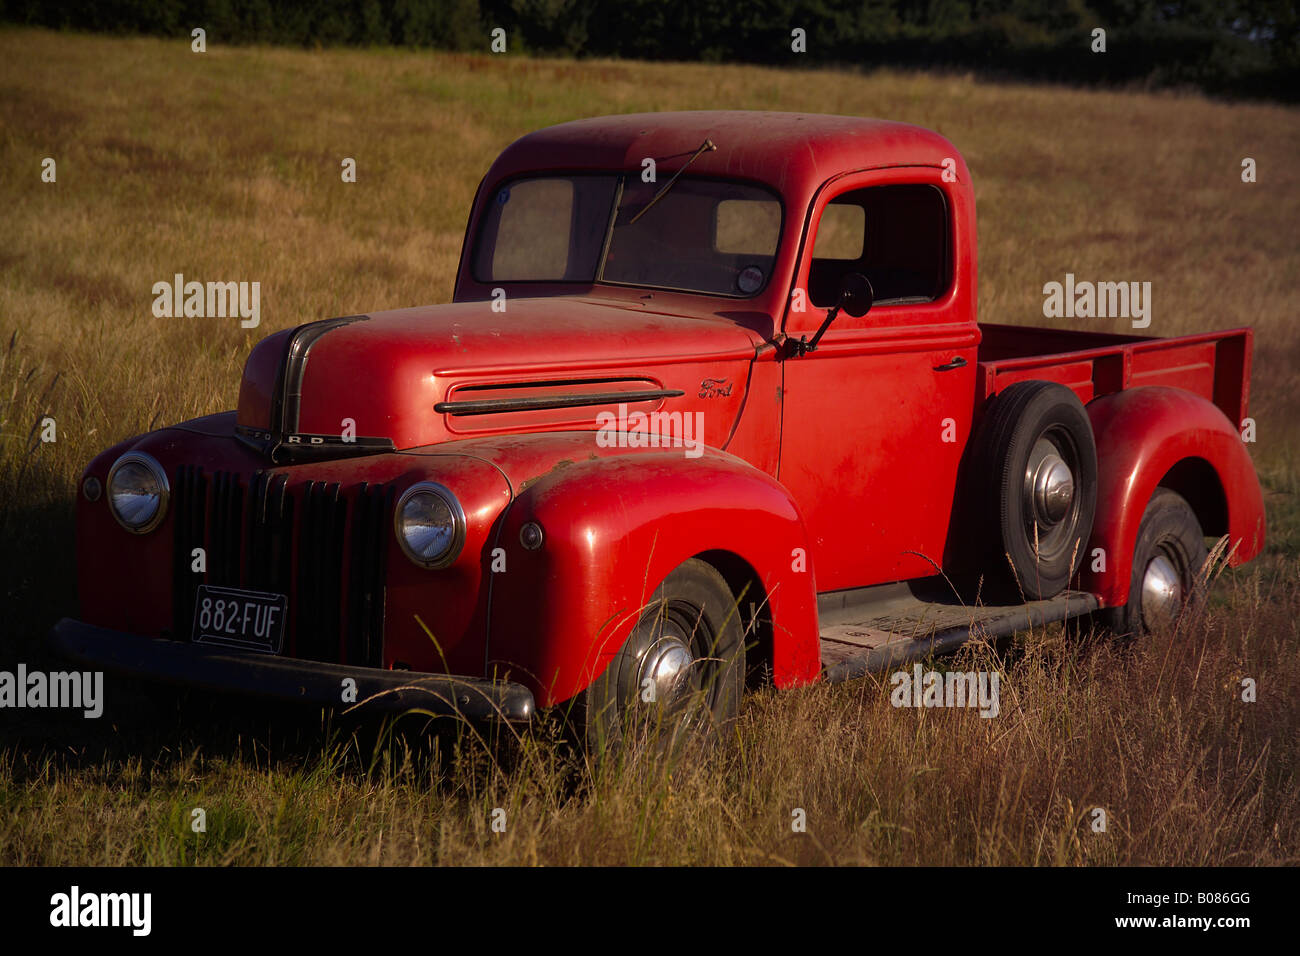 front view of an old american red ford pick up truck stock photo